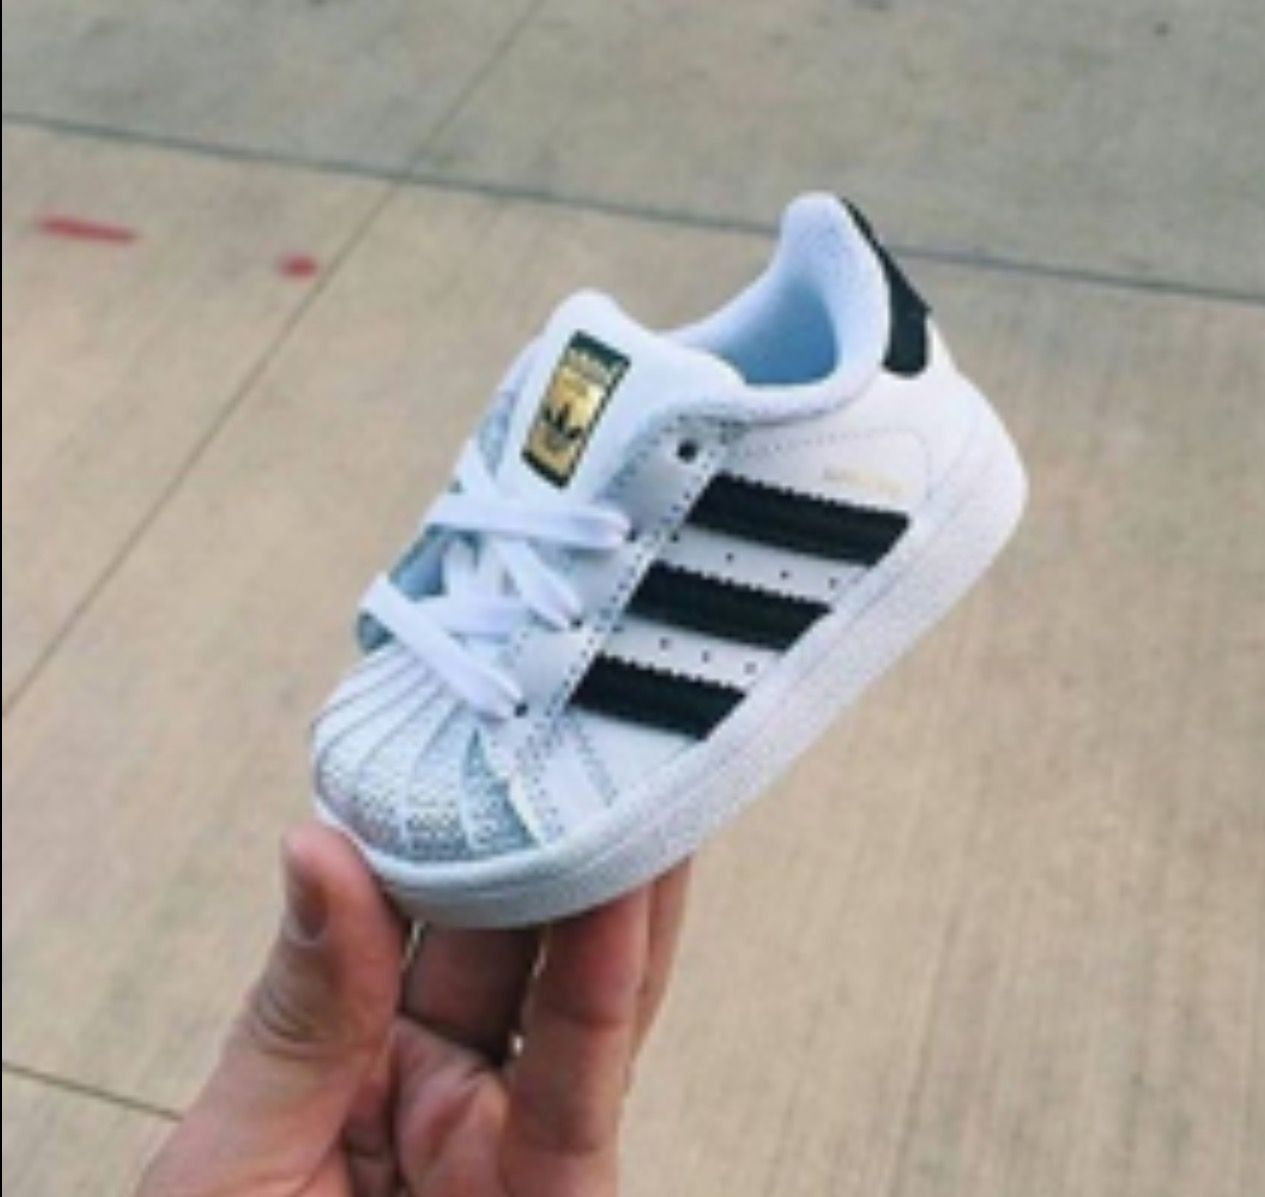 Flor de la ciudad tuberculosis Contribuyente  Adidas Superstar for babies✨😍 | Cute baby shoes, Baby girl shoes, Baby boy  shoes